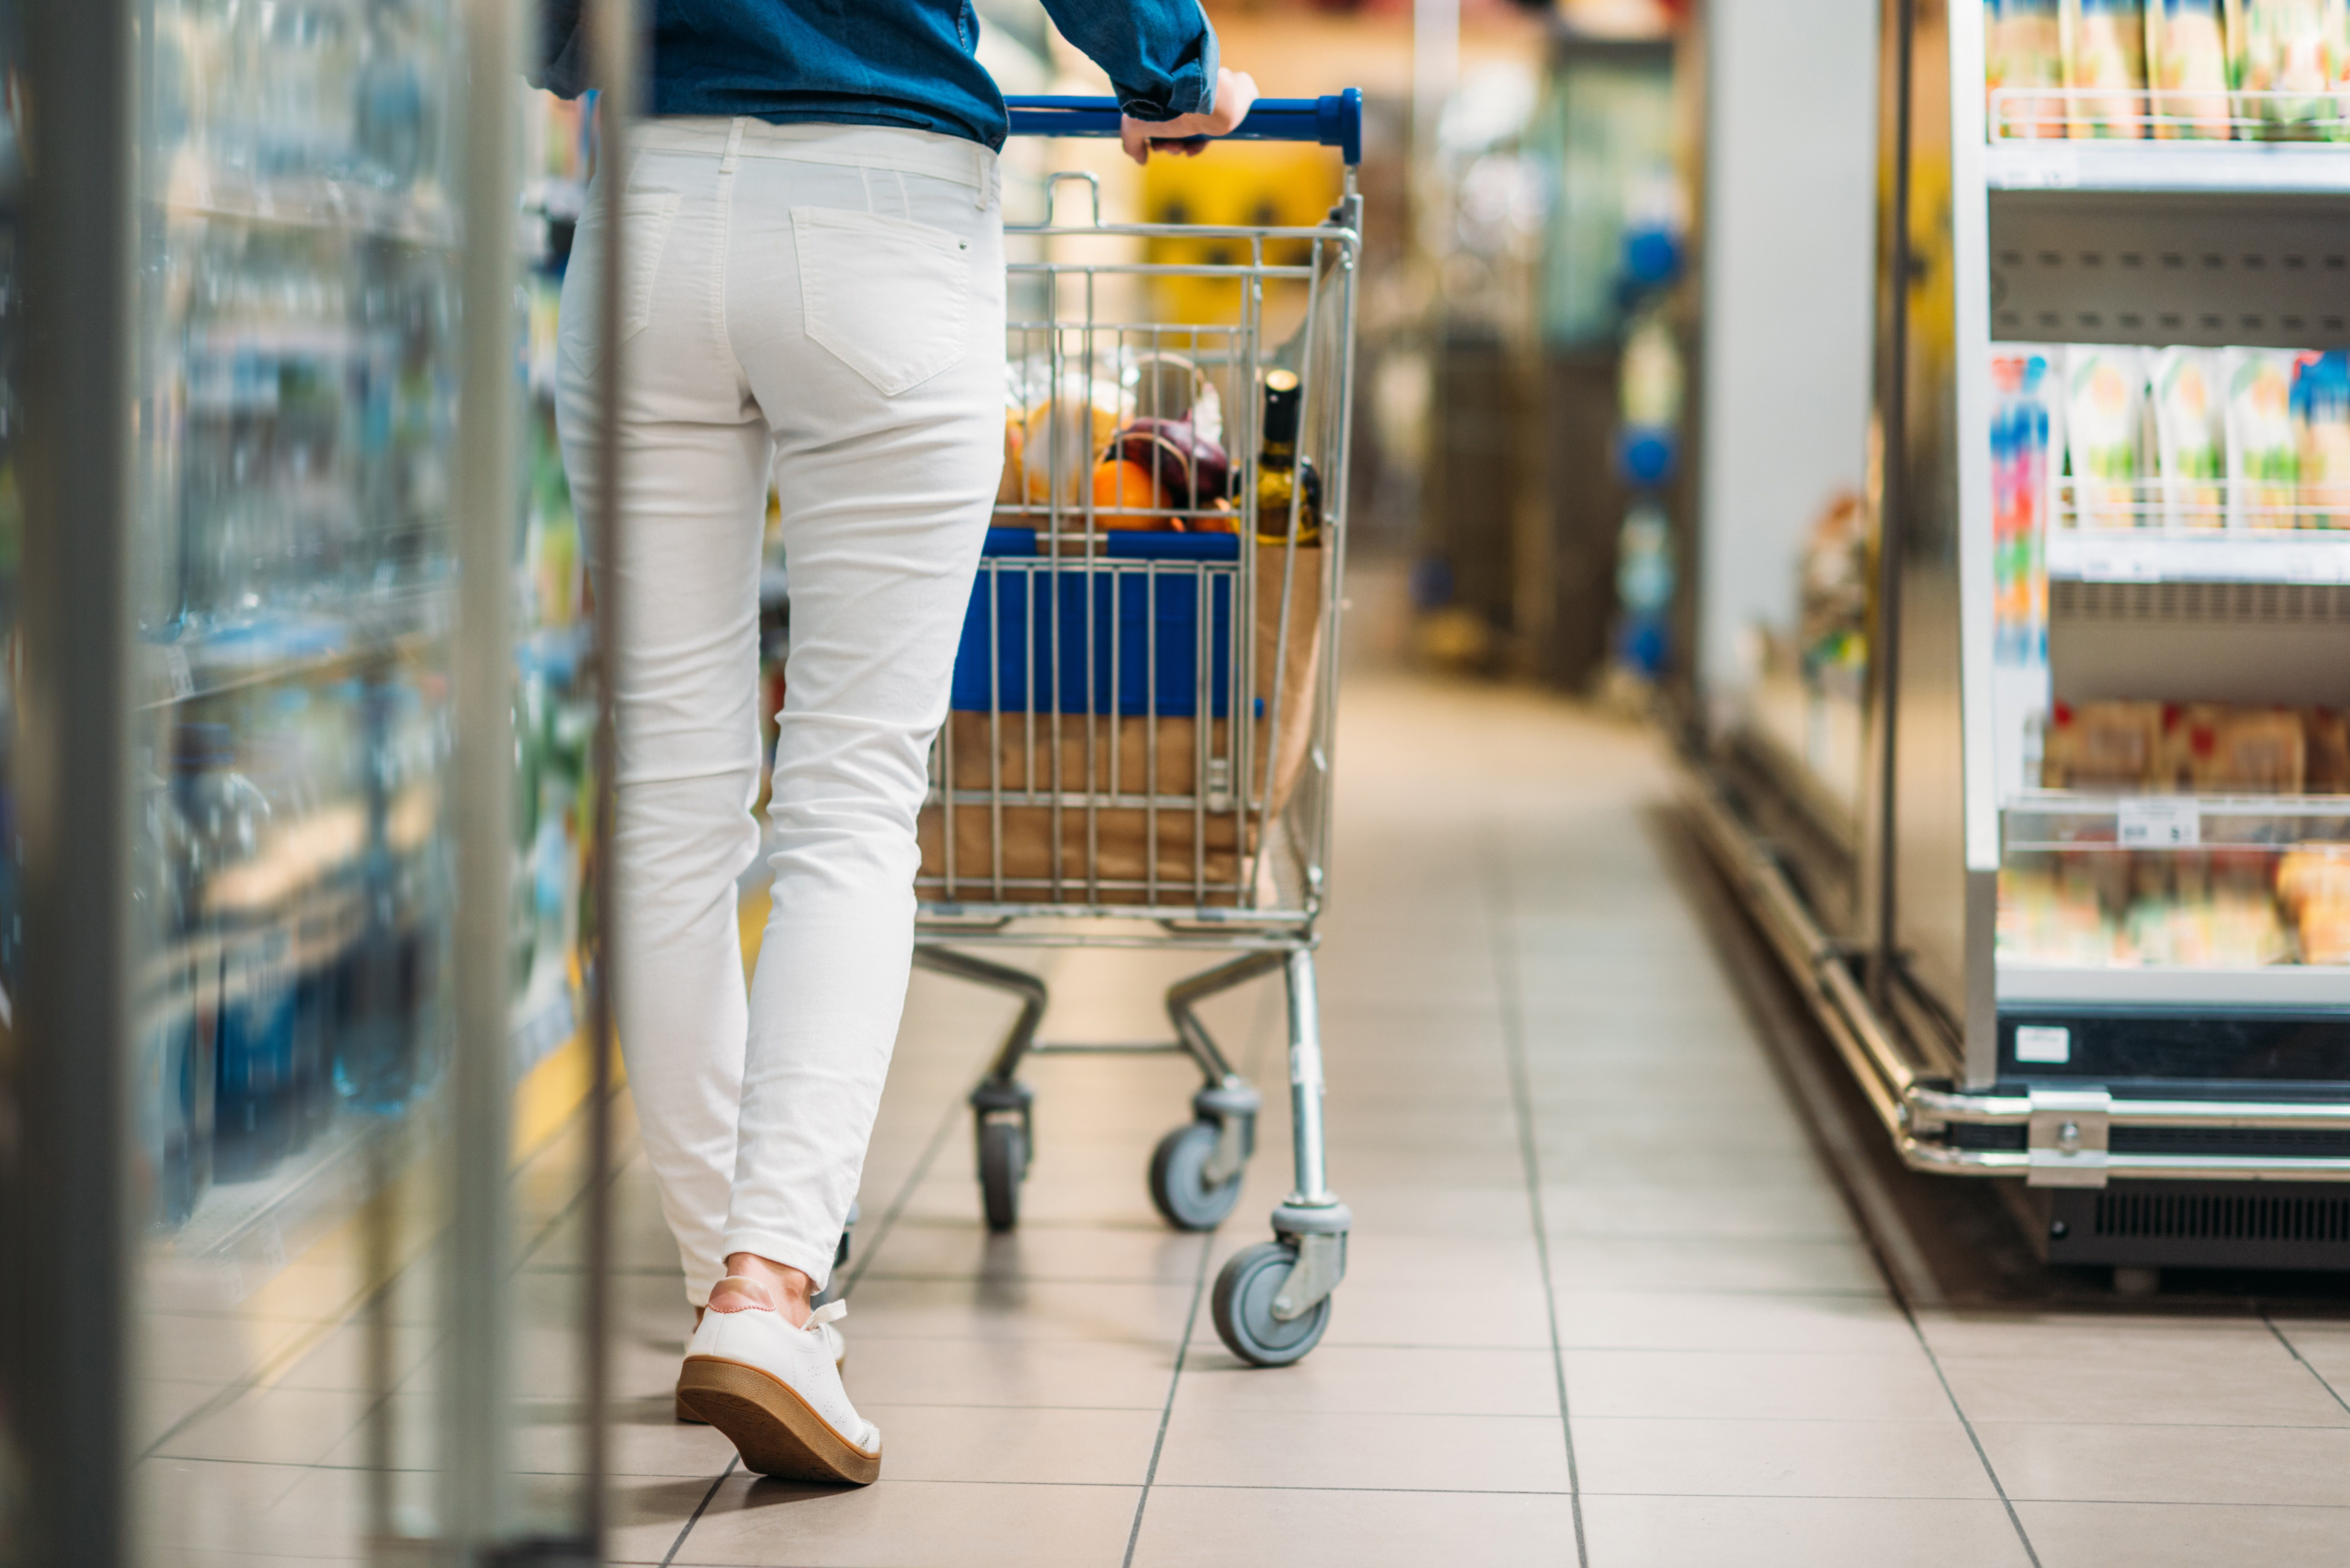 cropped shot of woman with shopping cart walking in supermarket